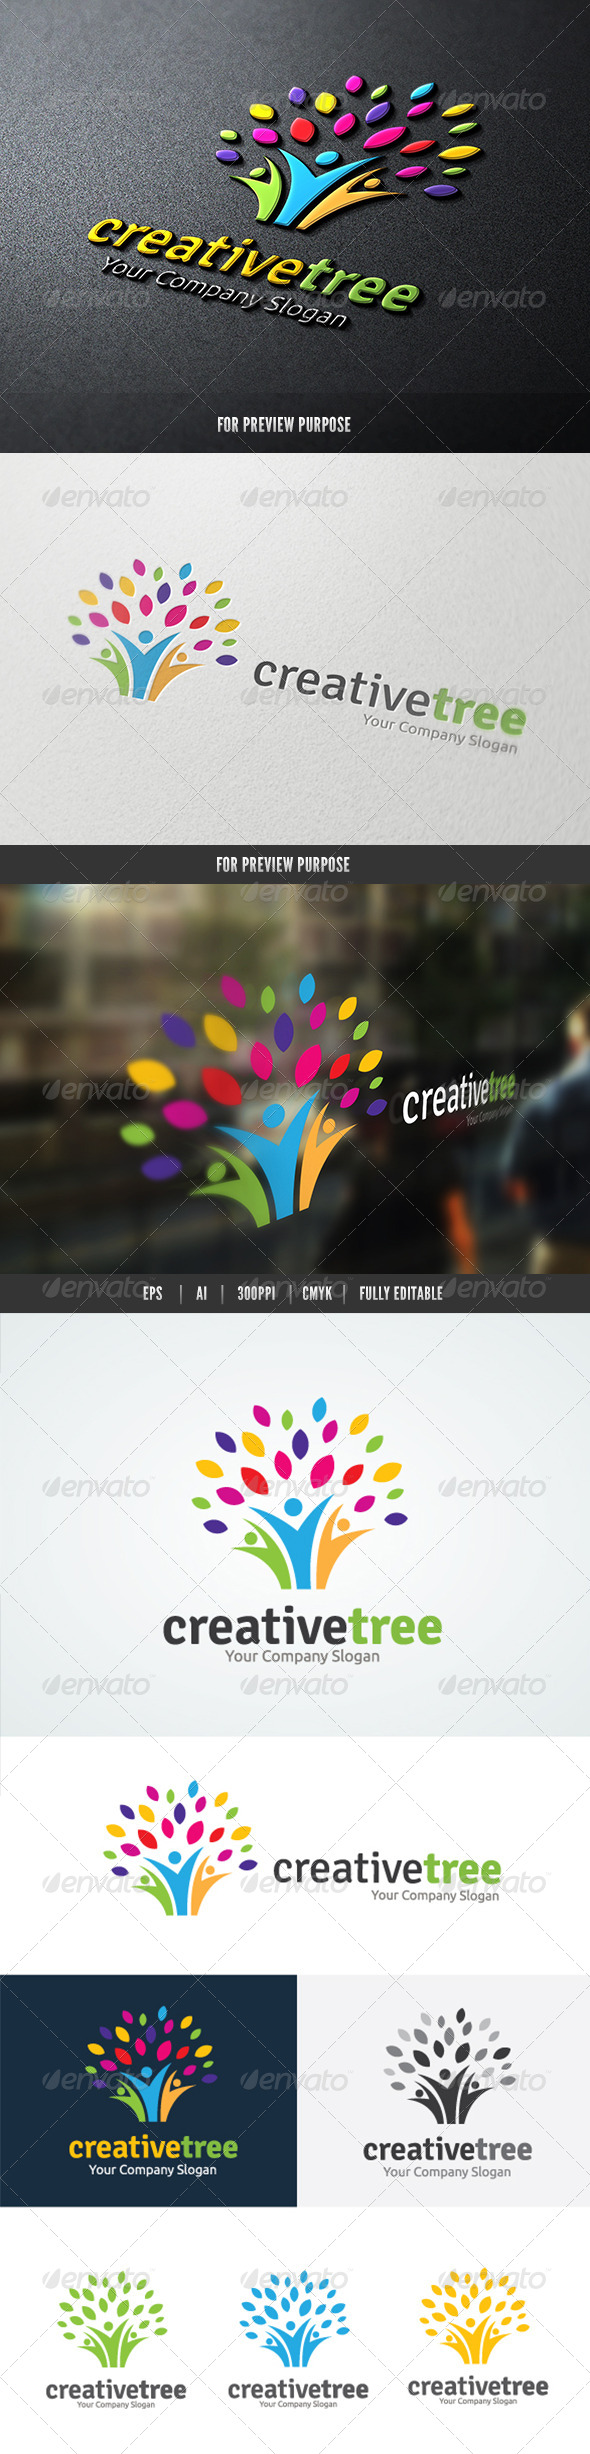 GraphicRiver People Creative Tree logo 8326607